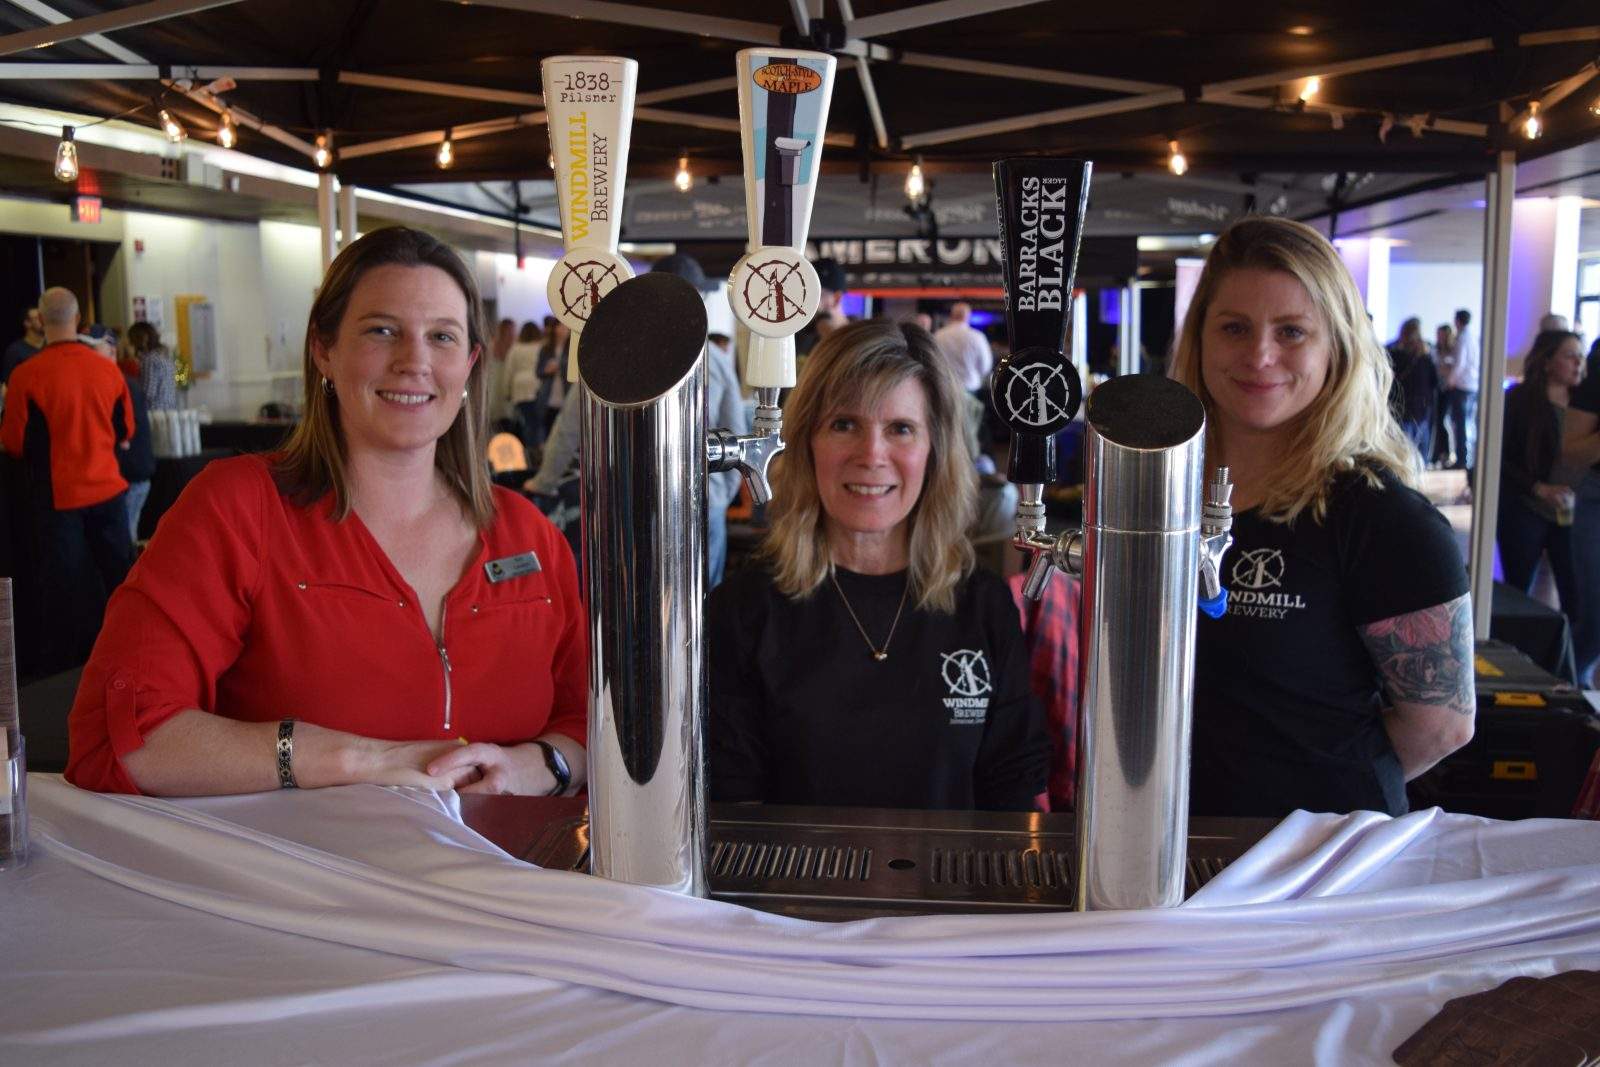 Suds & Sap festival sees strong second year